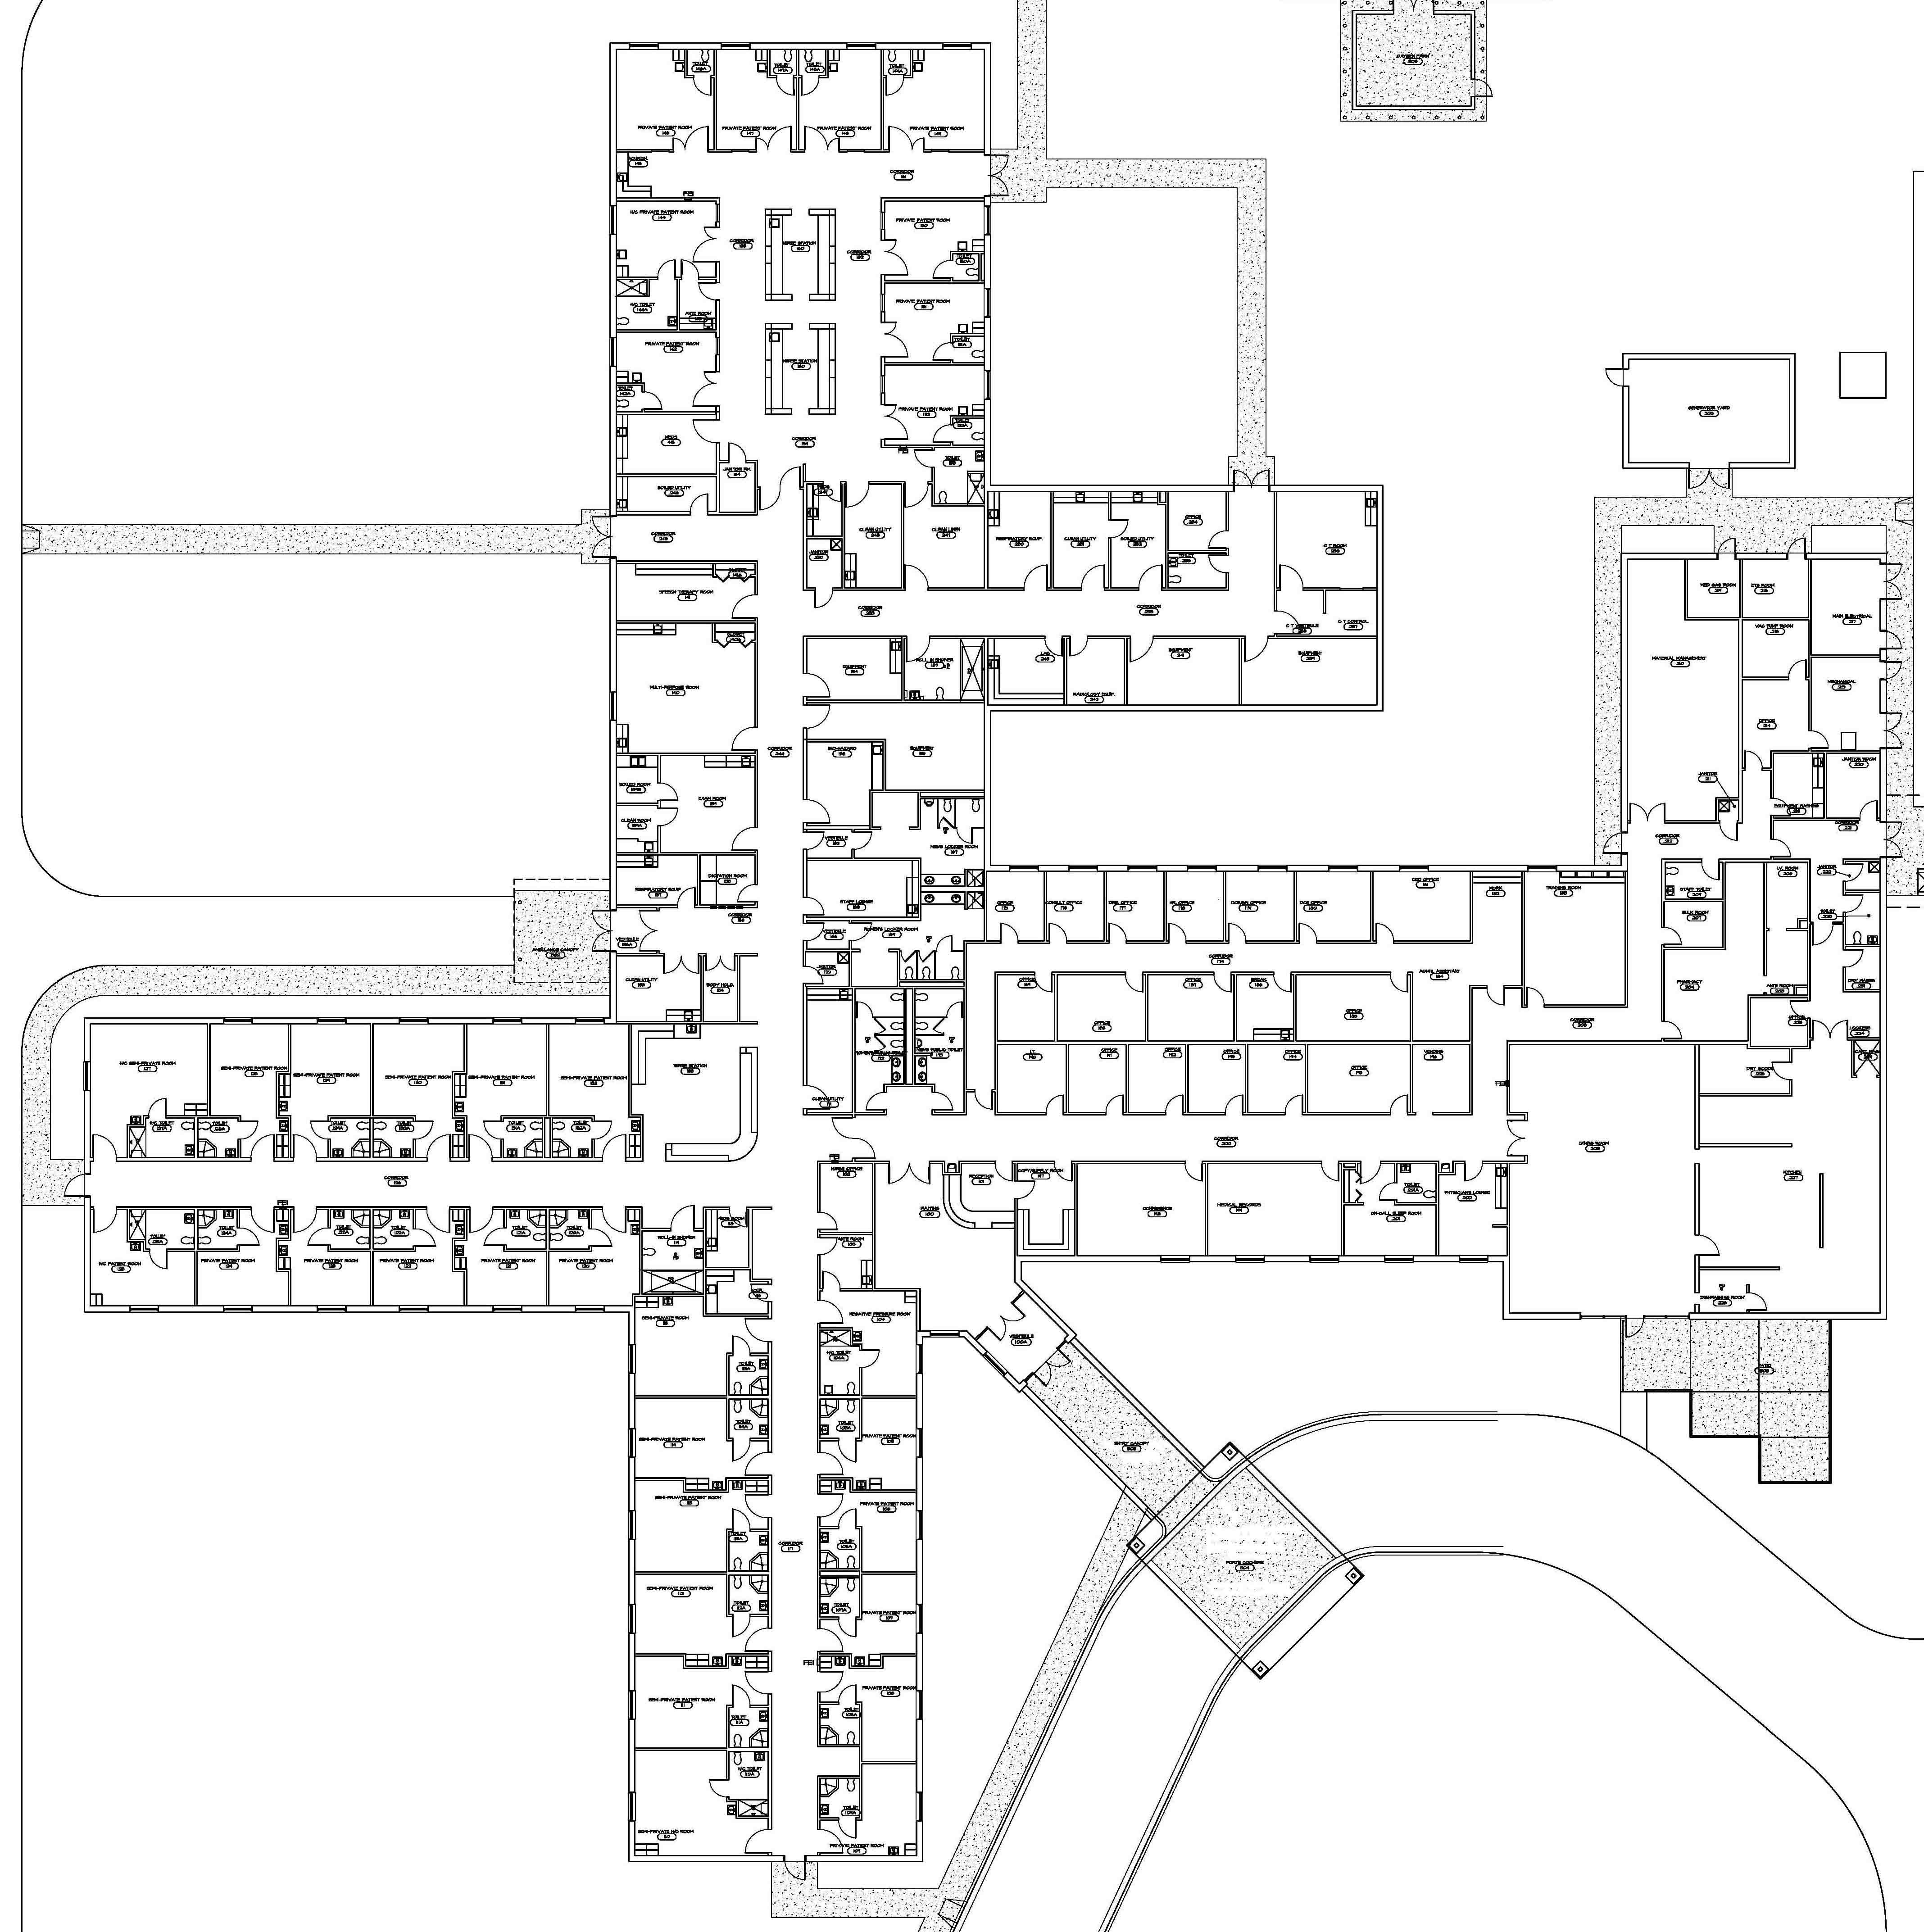 Oncology Center Floor Plans